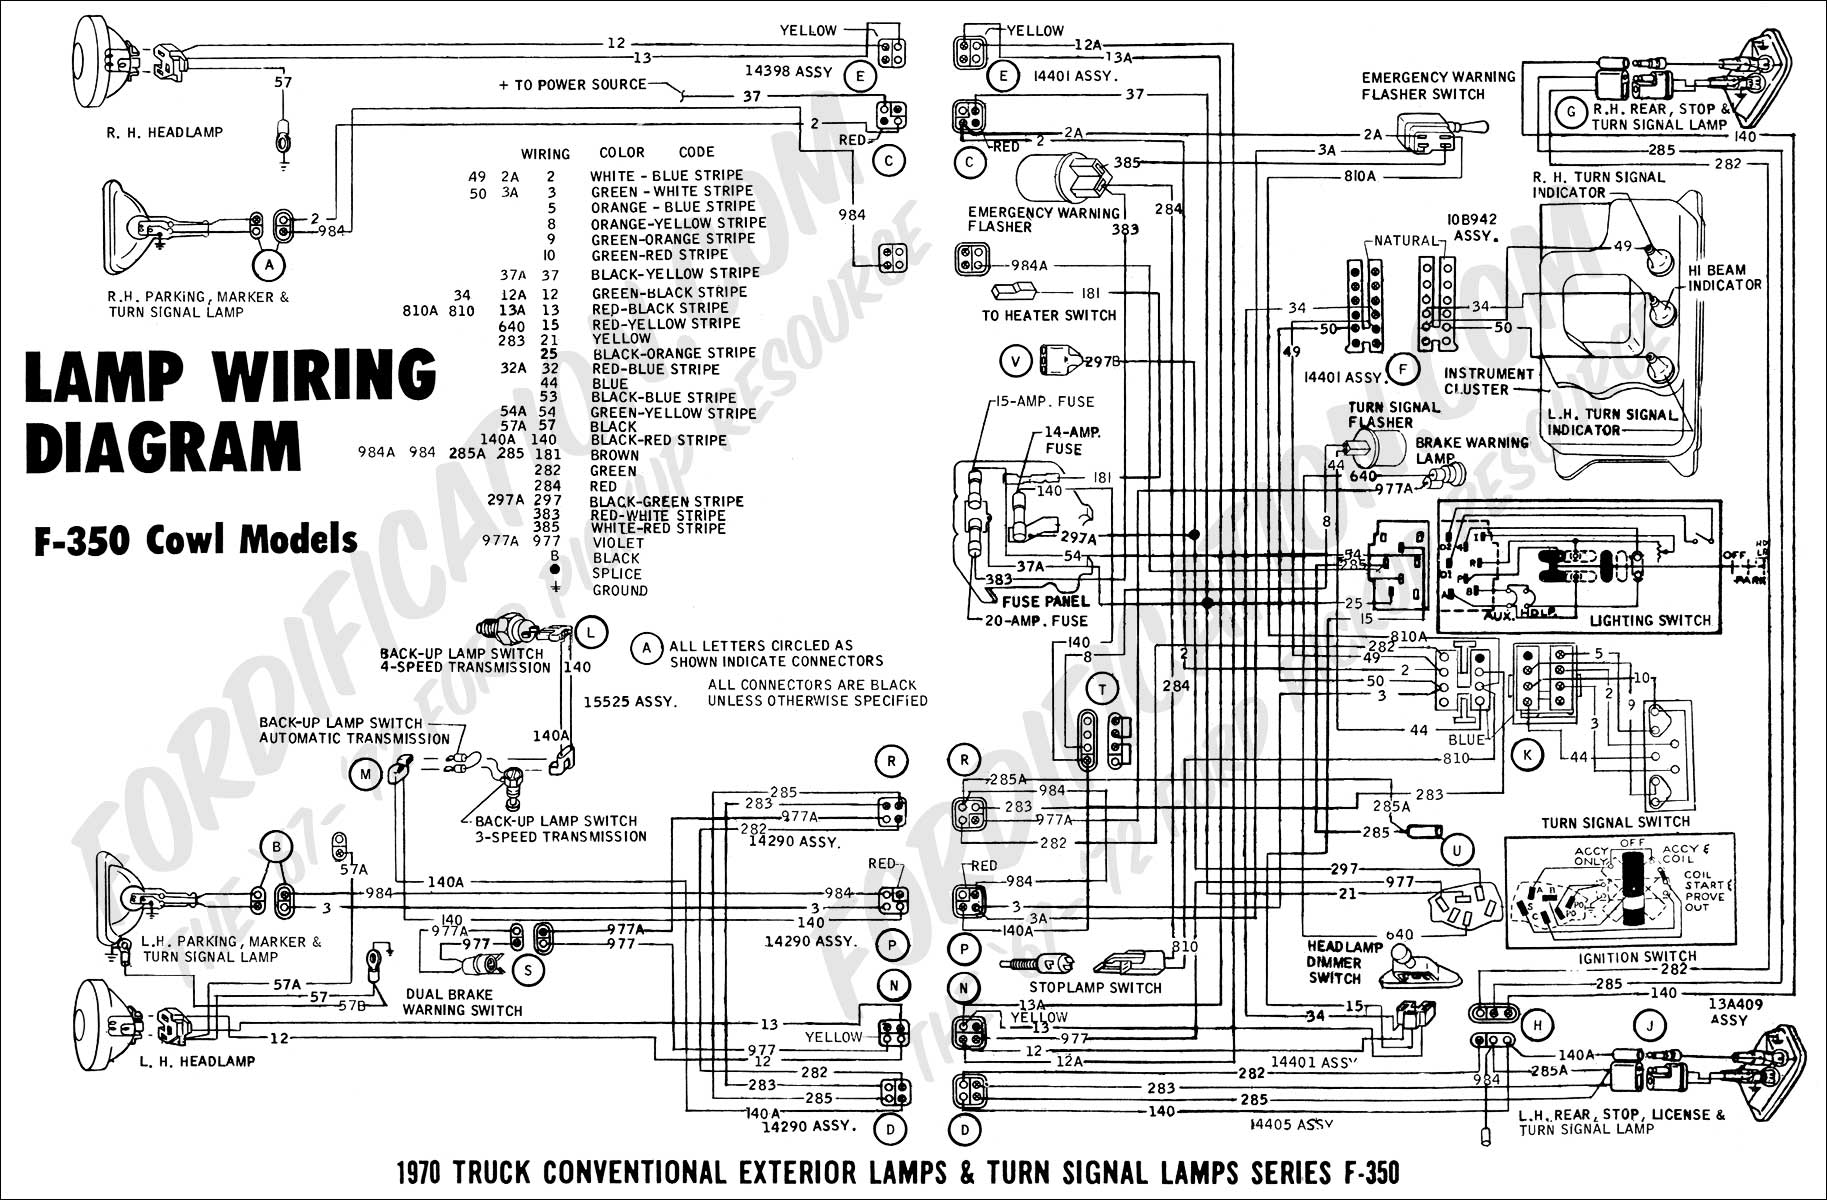 2003 F750 Wiring Schematic Wiring Diagrams The